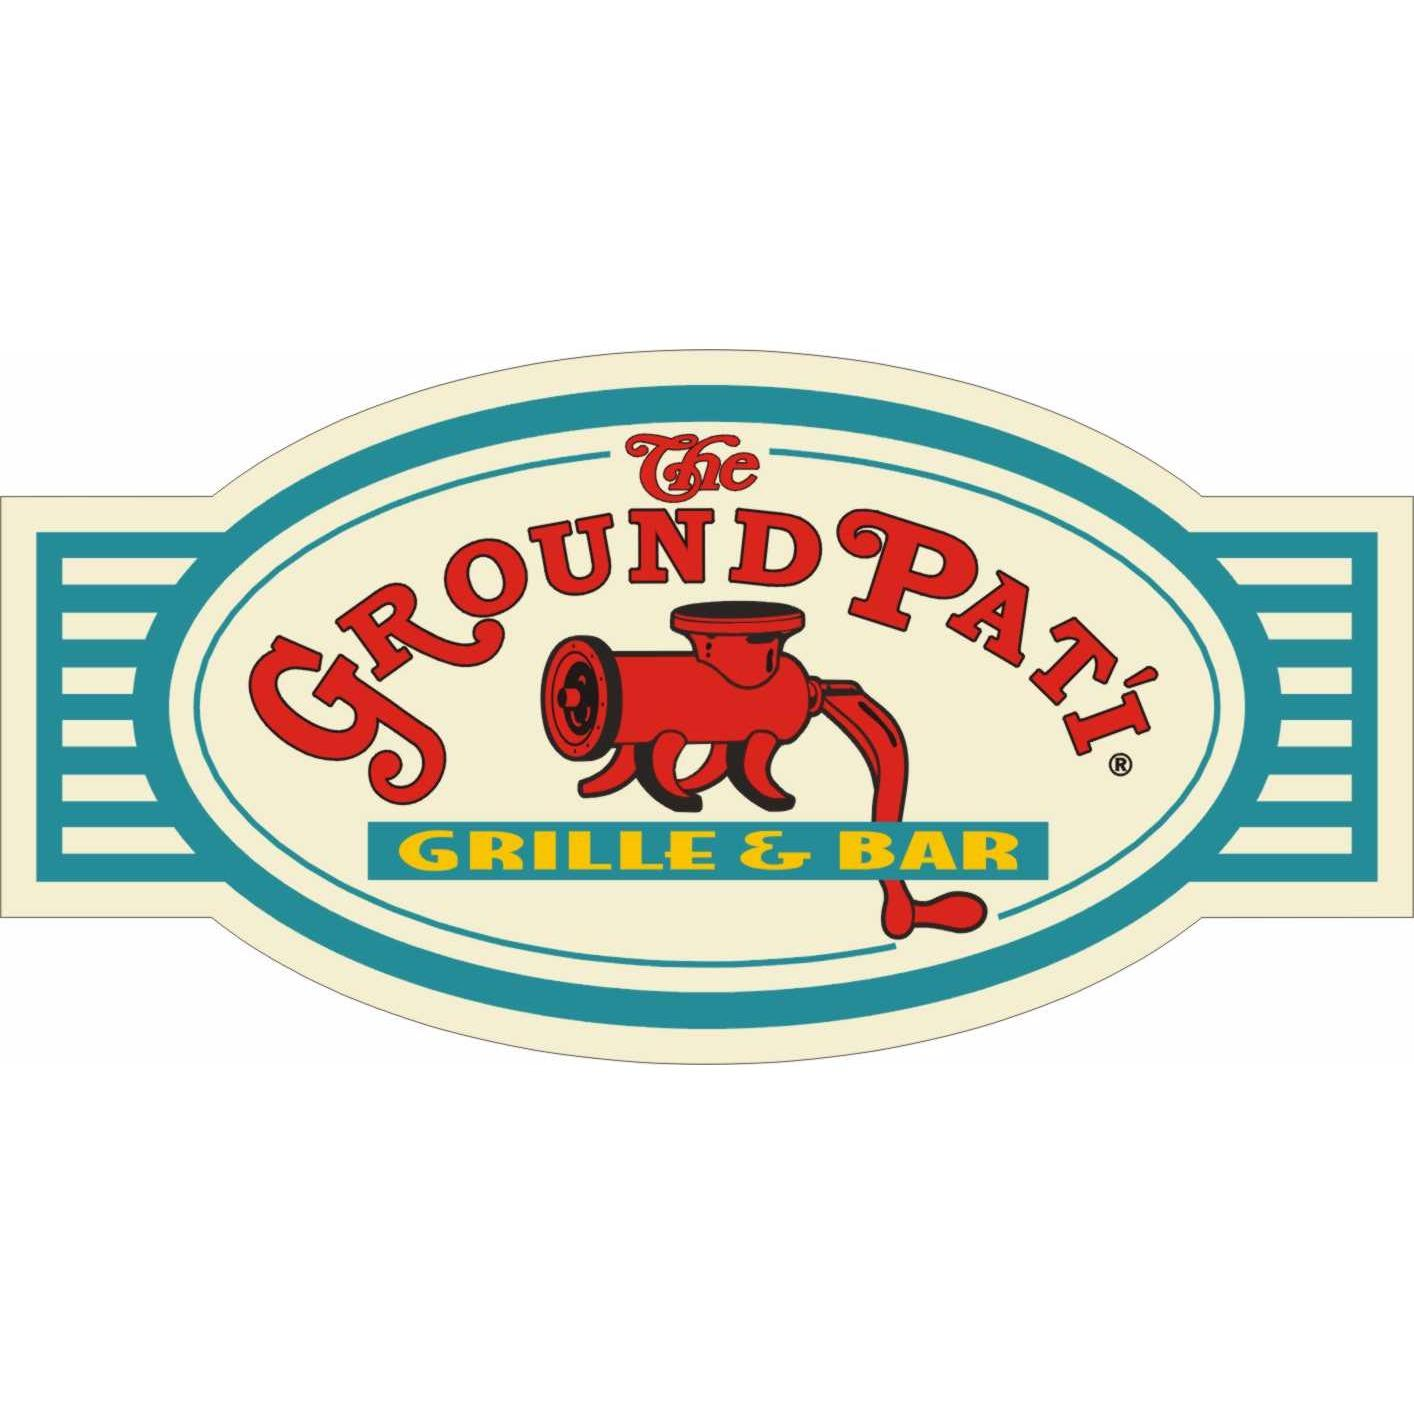 The Ground Pat'i Grille & Bar